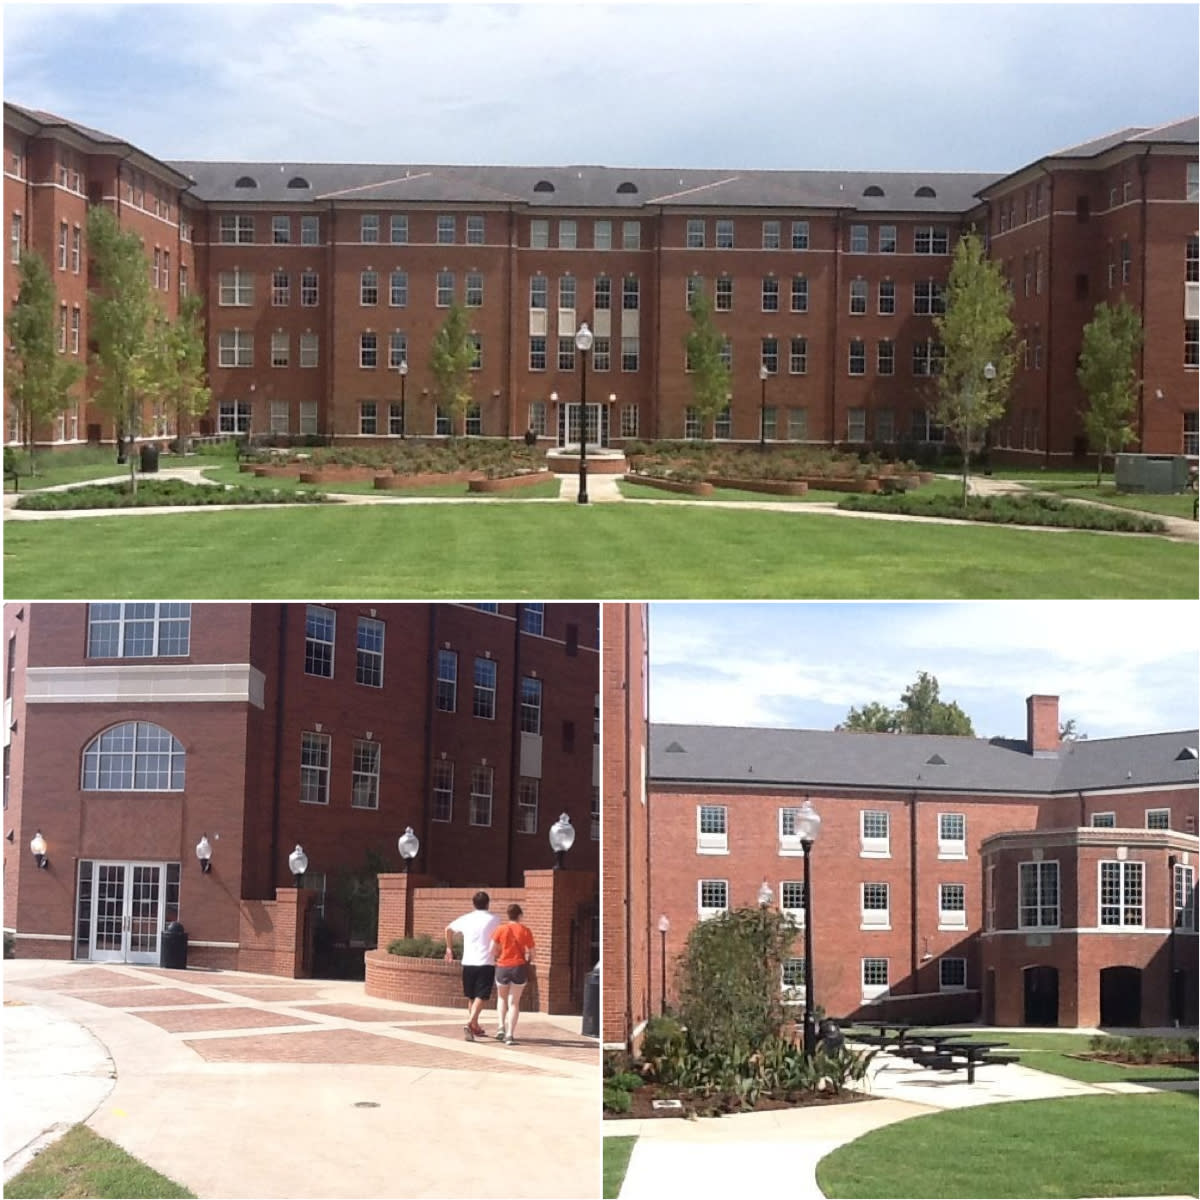 University of Louisiana at Lafayette Dorms